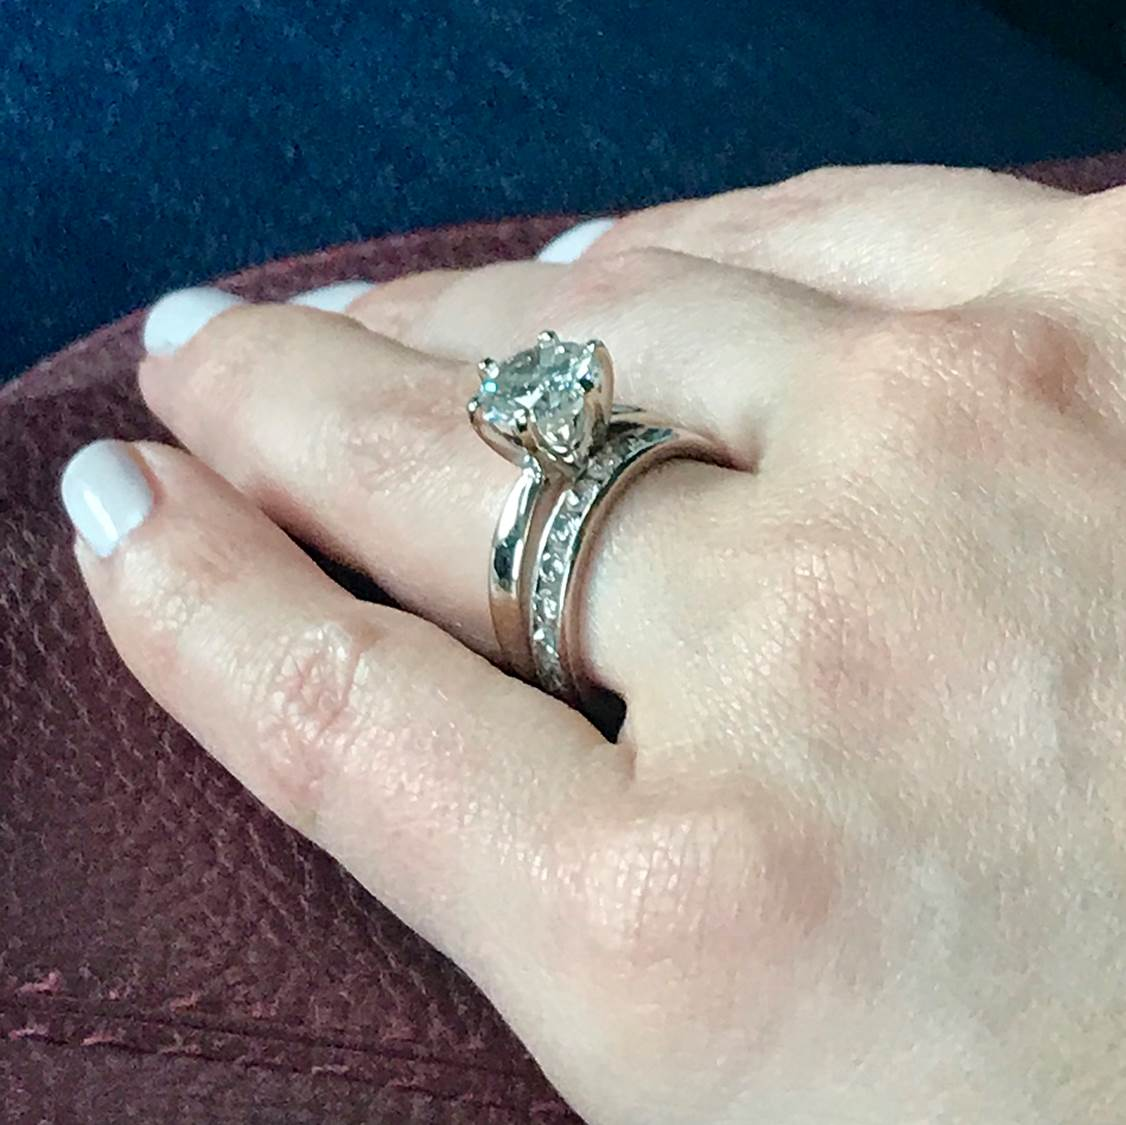 engagement ring complete with the wedding band